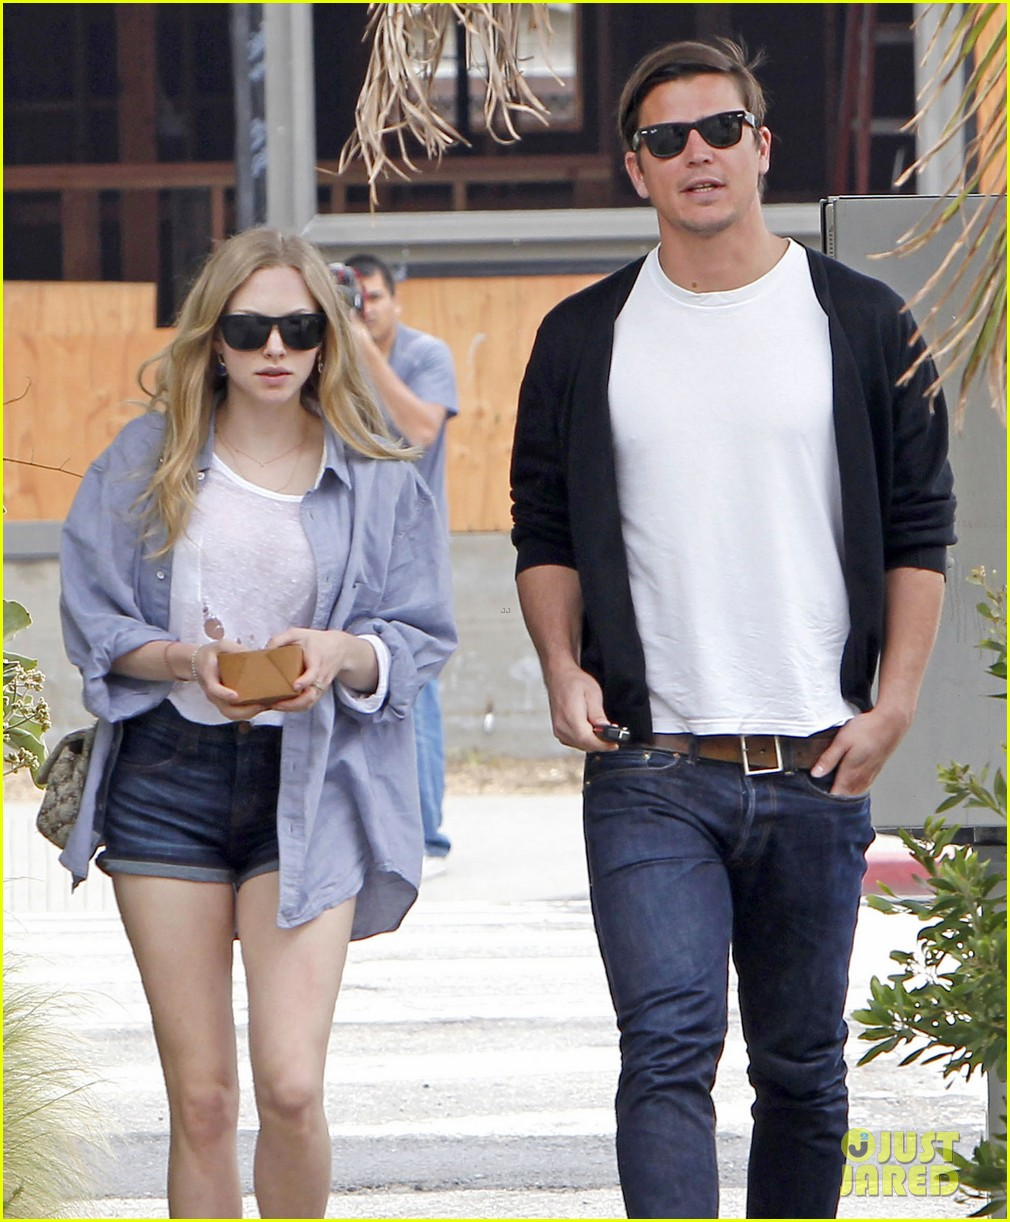 amanda seyfried josh hartnett wabi sabi lunch 032652120